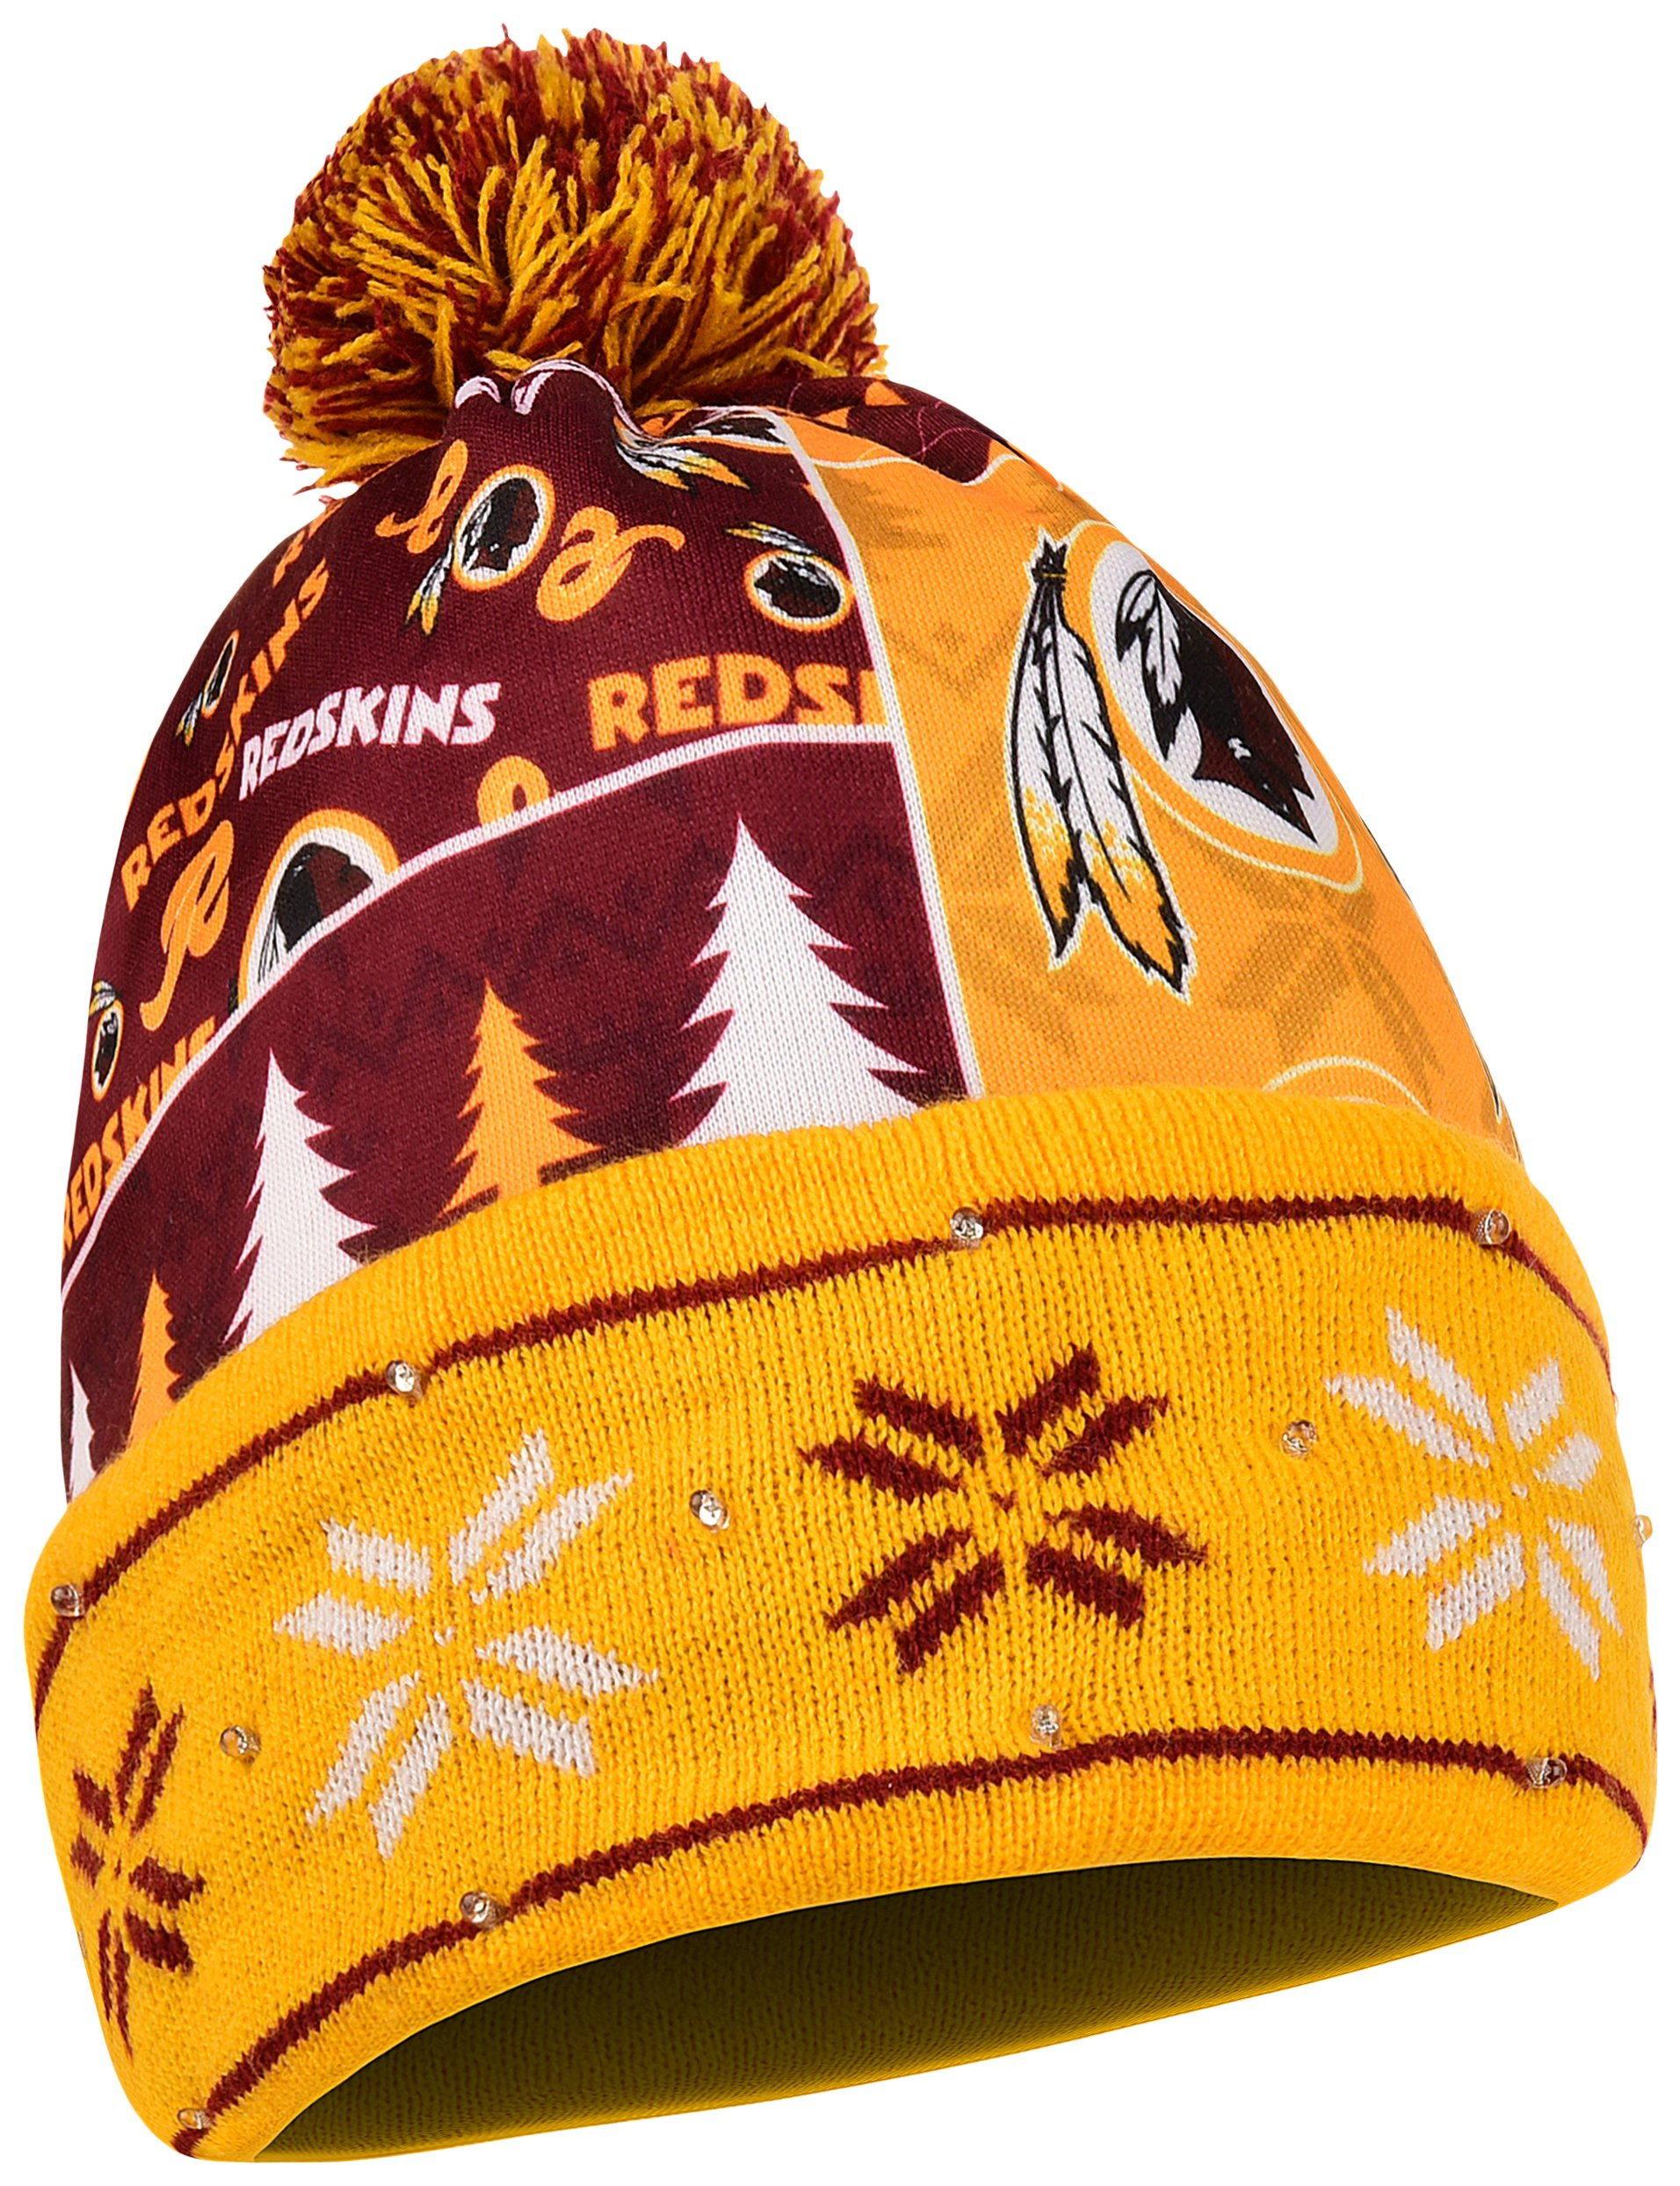 FOCO Washington Redskins Exclusive Busy Block Printed Light Up Beanie